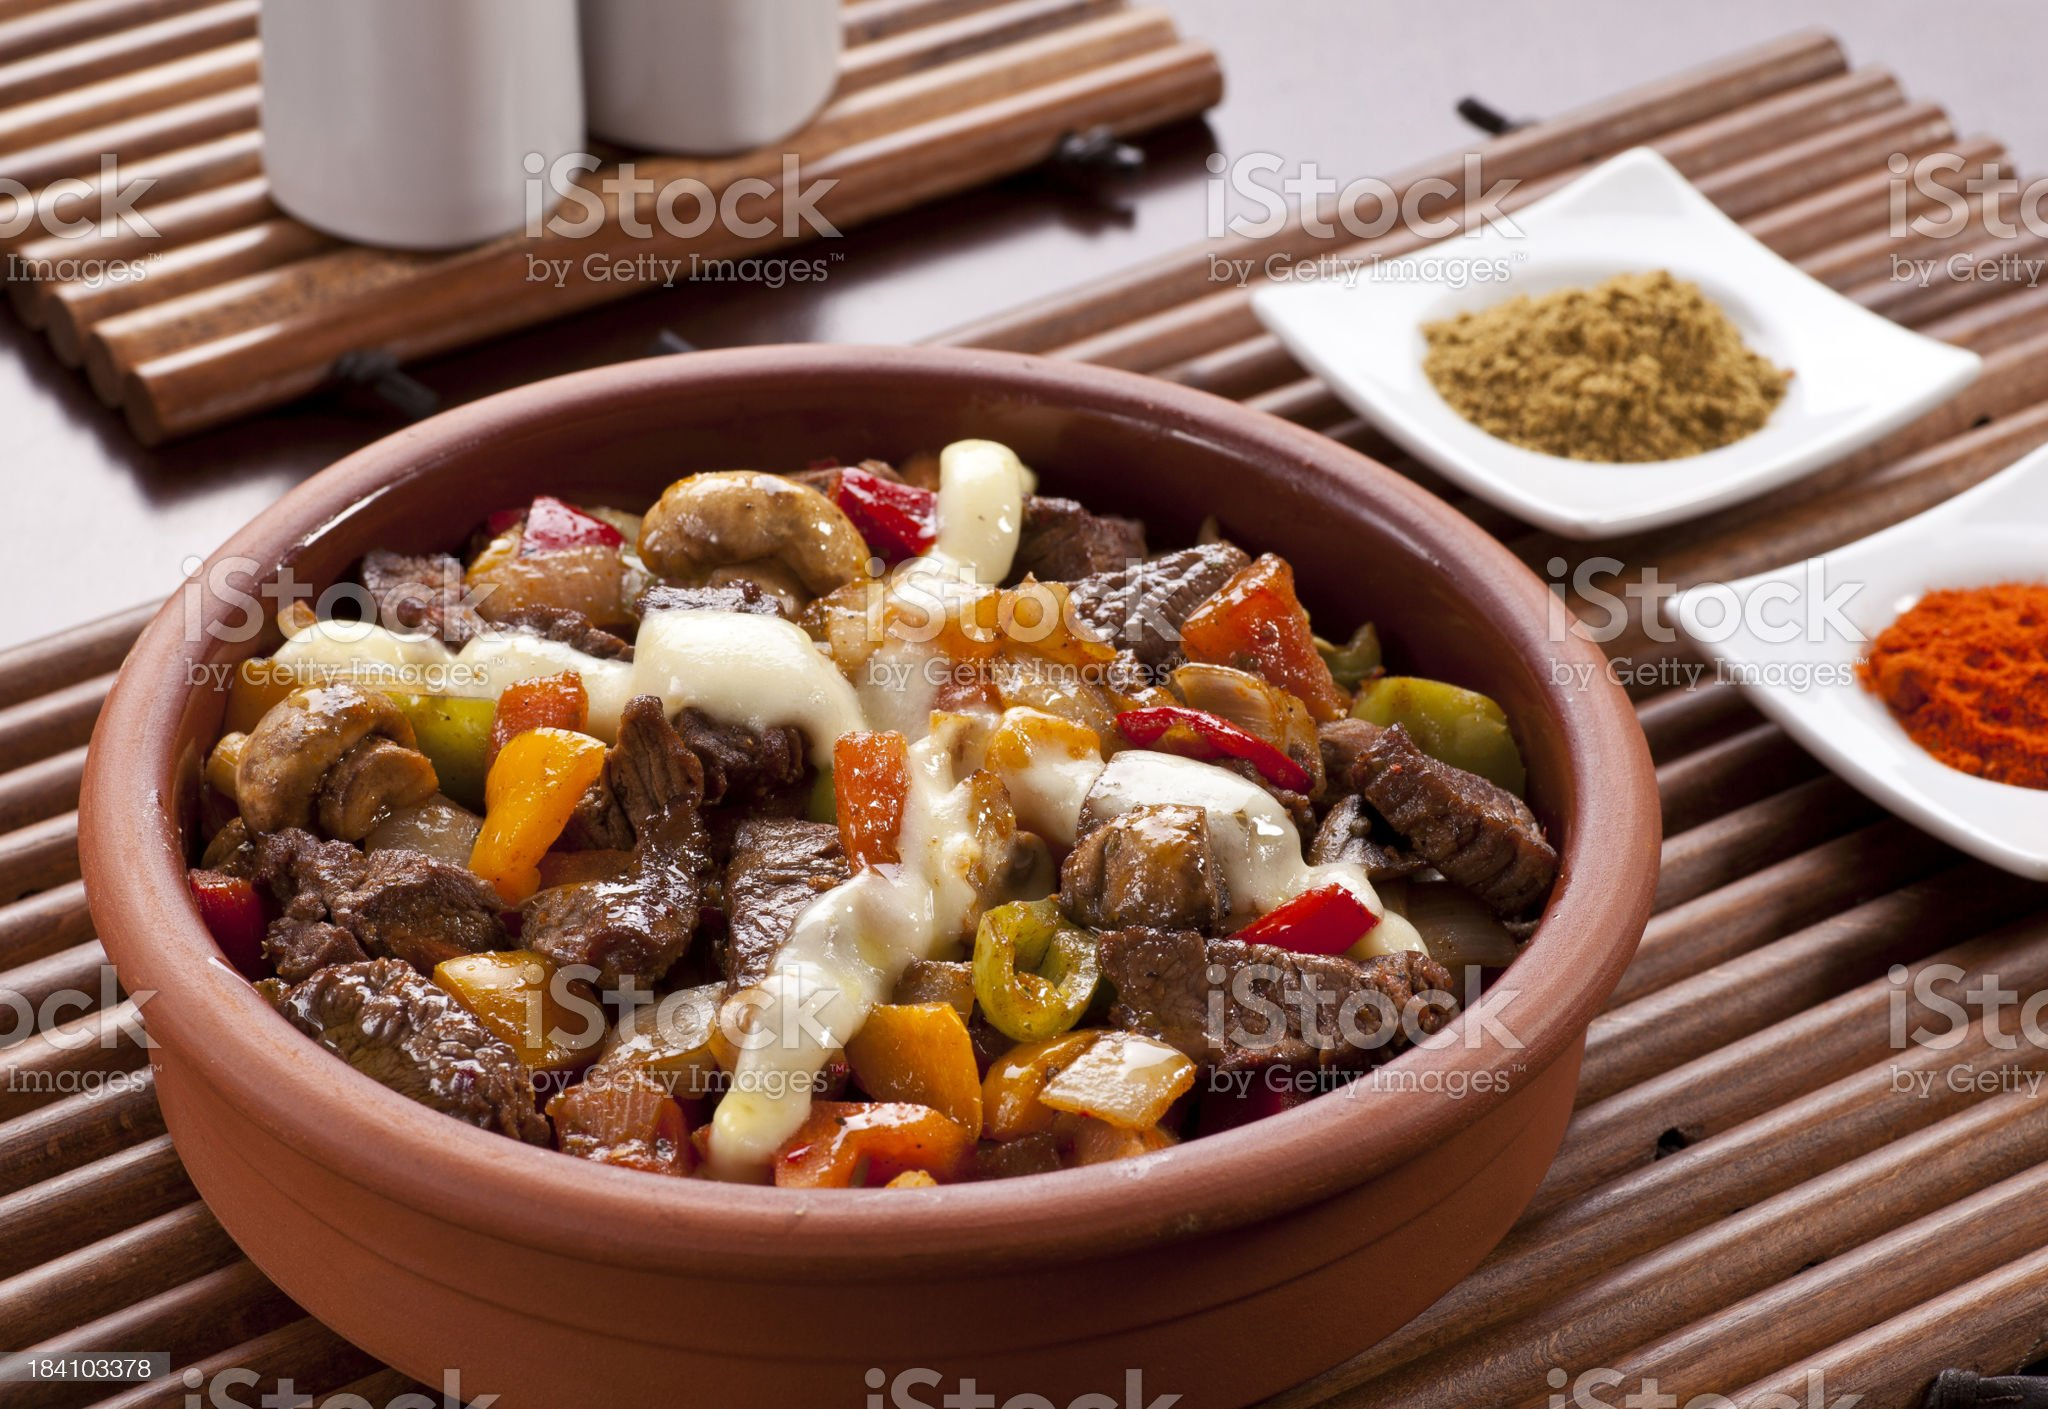 Turkish guvech (güveç) in traditional plate. royalty-free stock photo